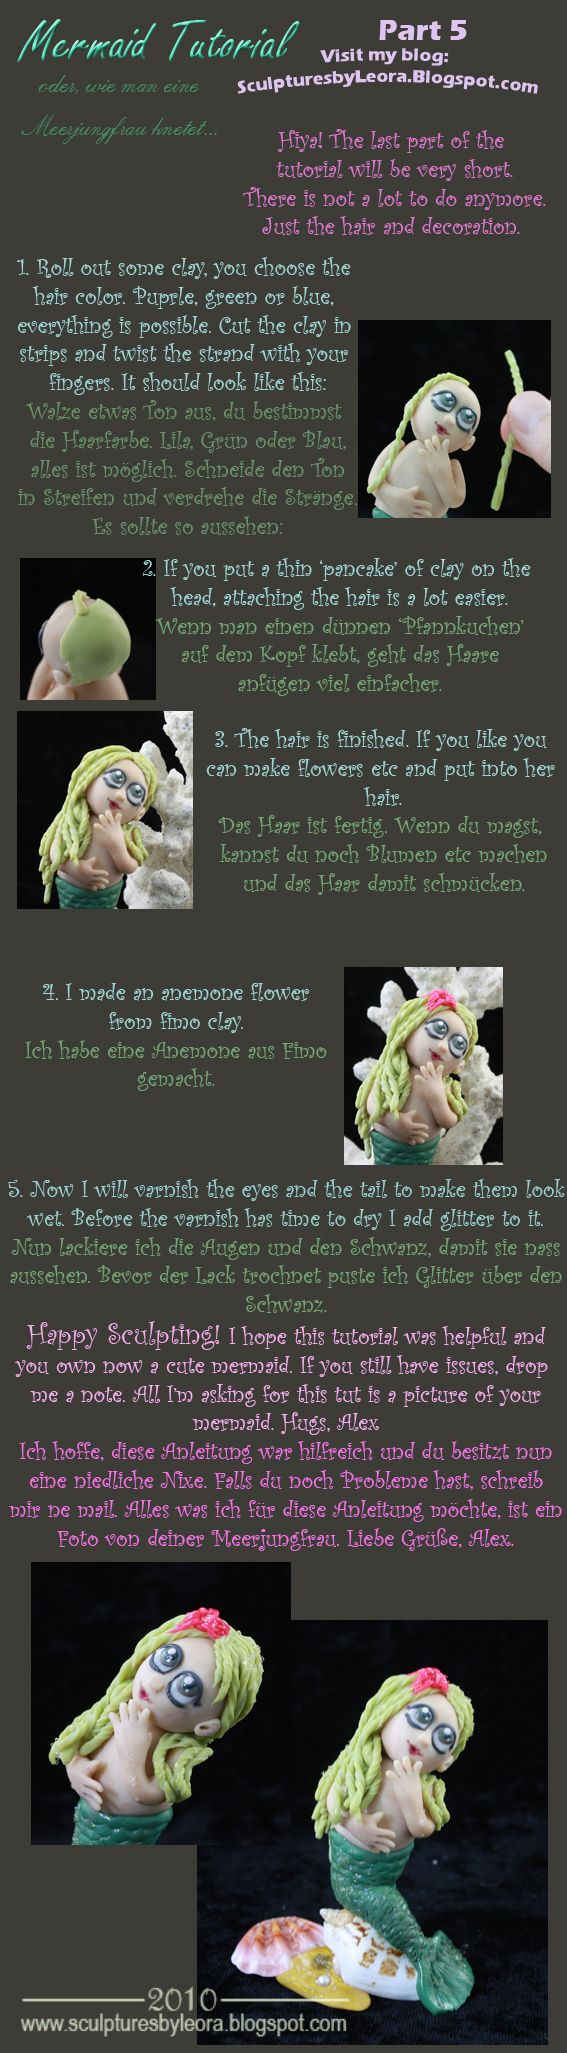 Mermaid tutorial part5 by ALBuslovich.deviantart.com on @deviantART